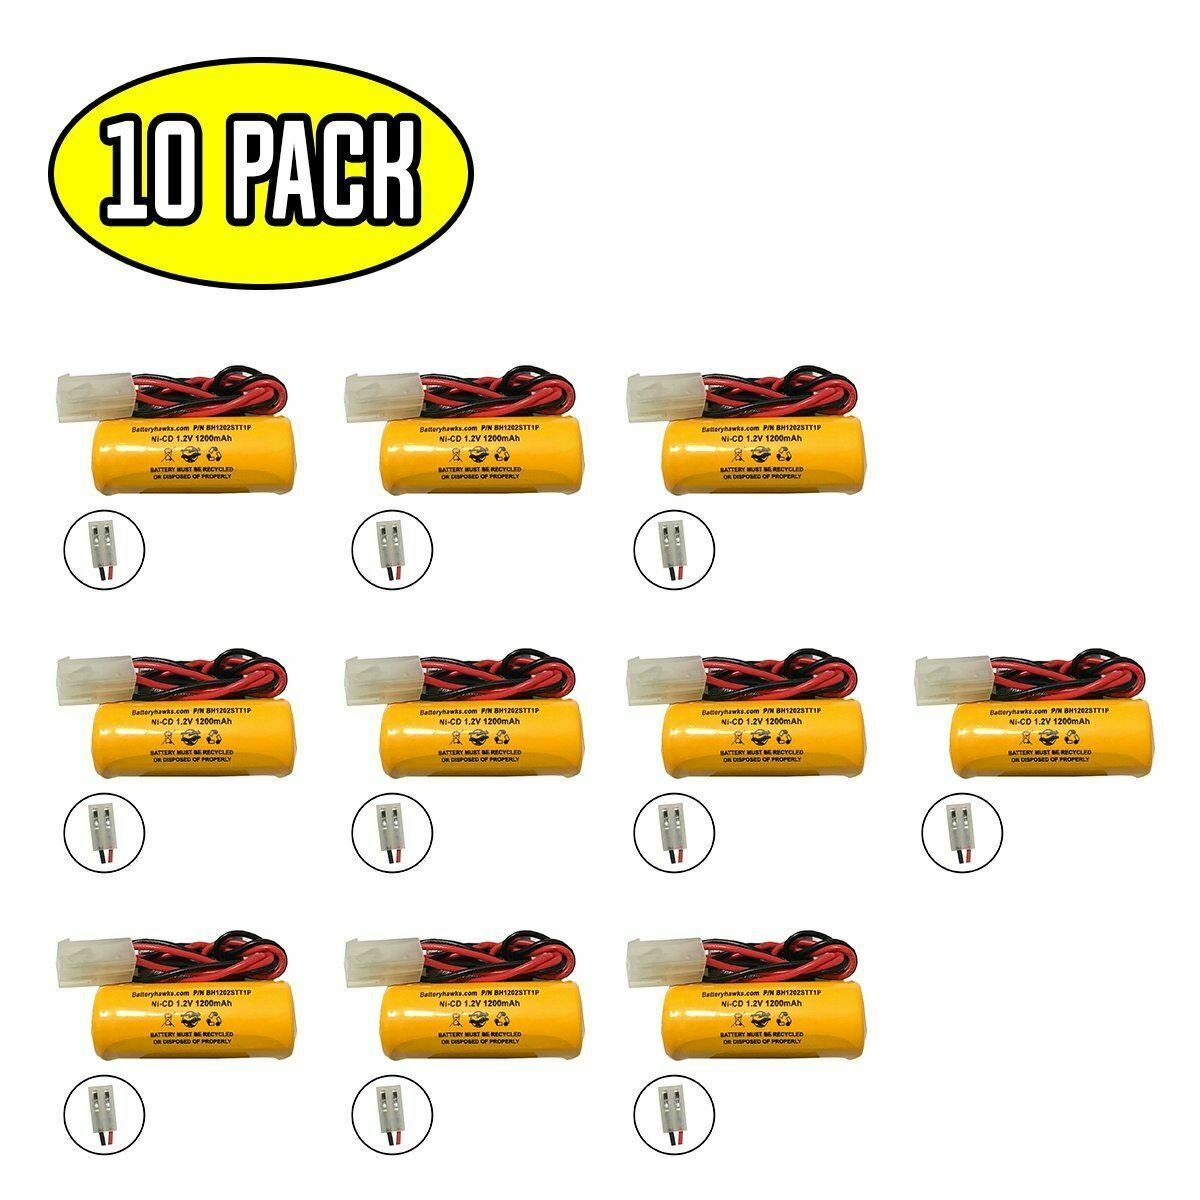 (10 pack) 1.2v 1200mAh Ni-CD Battery Pack Replacement for Emergency / Exit Light